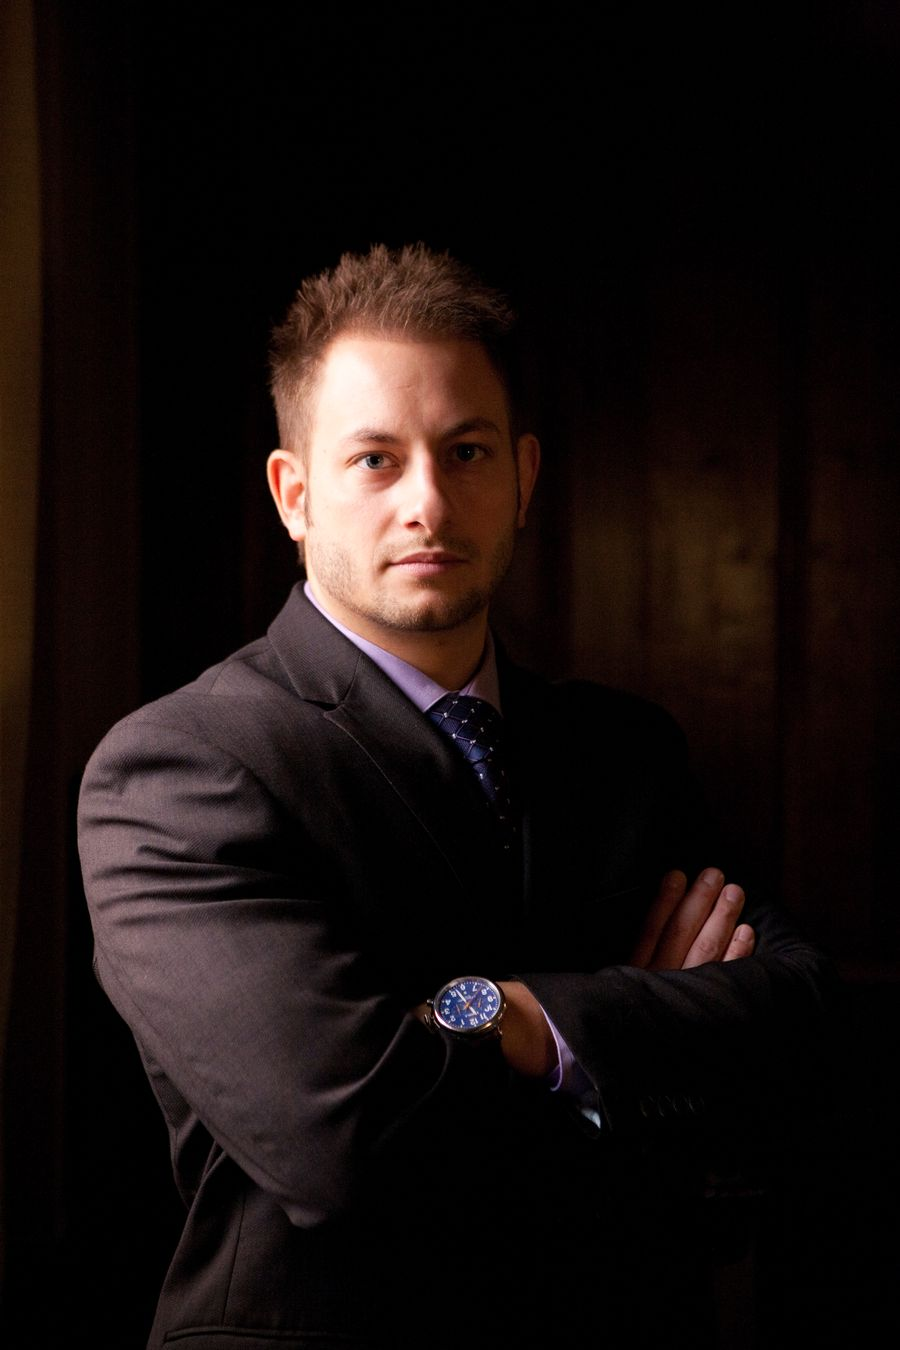 Aaron Boria Attorney at Law photograph